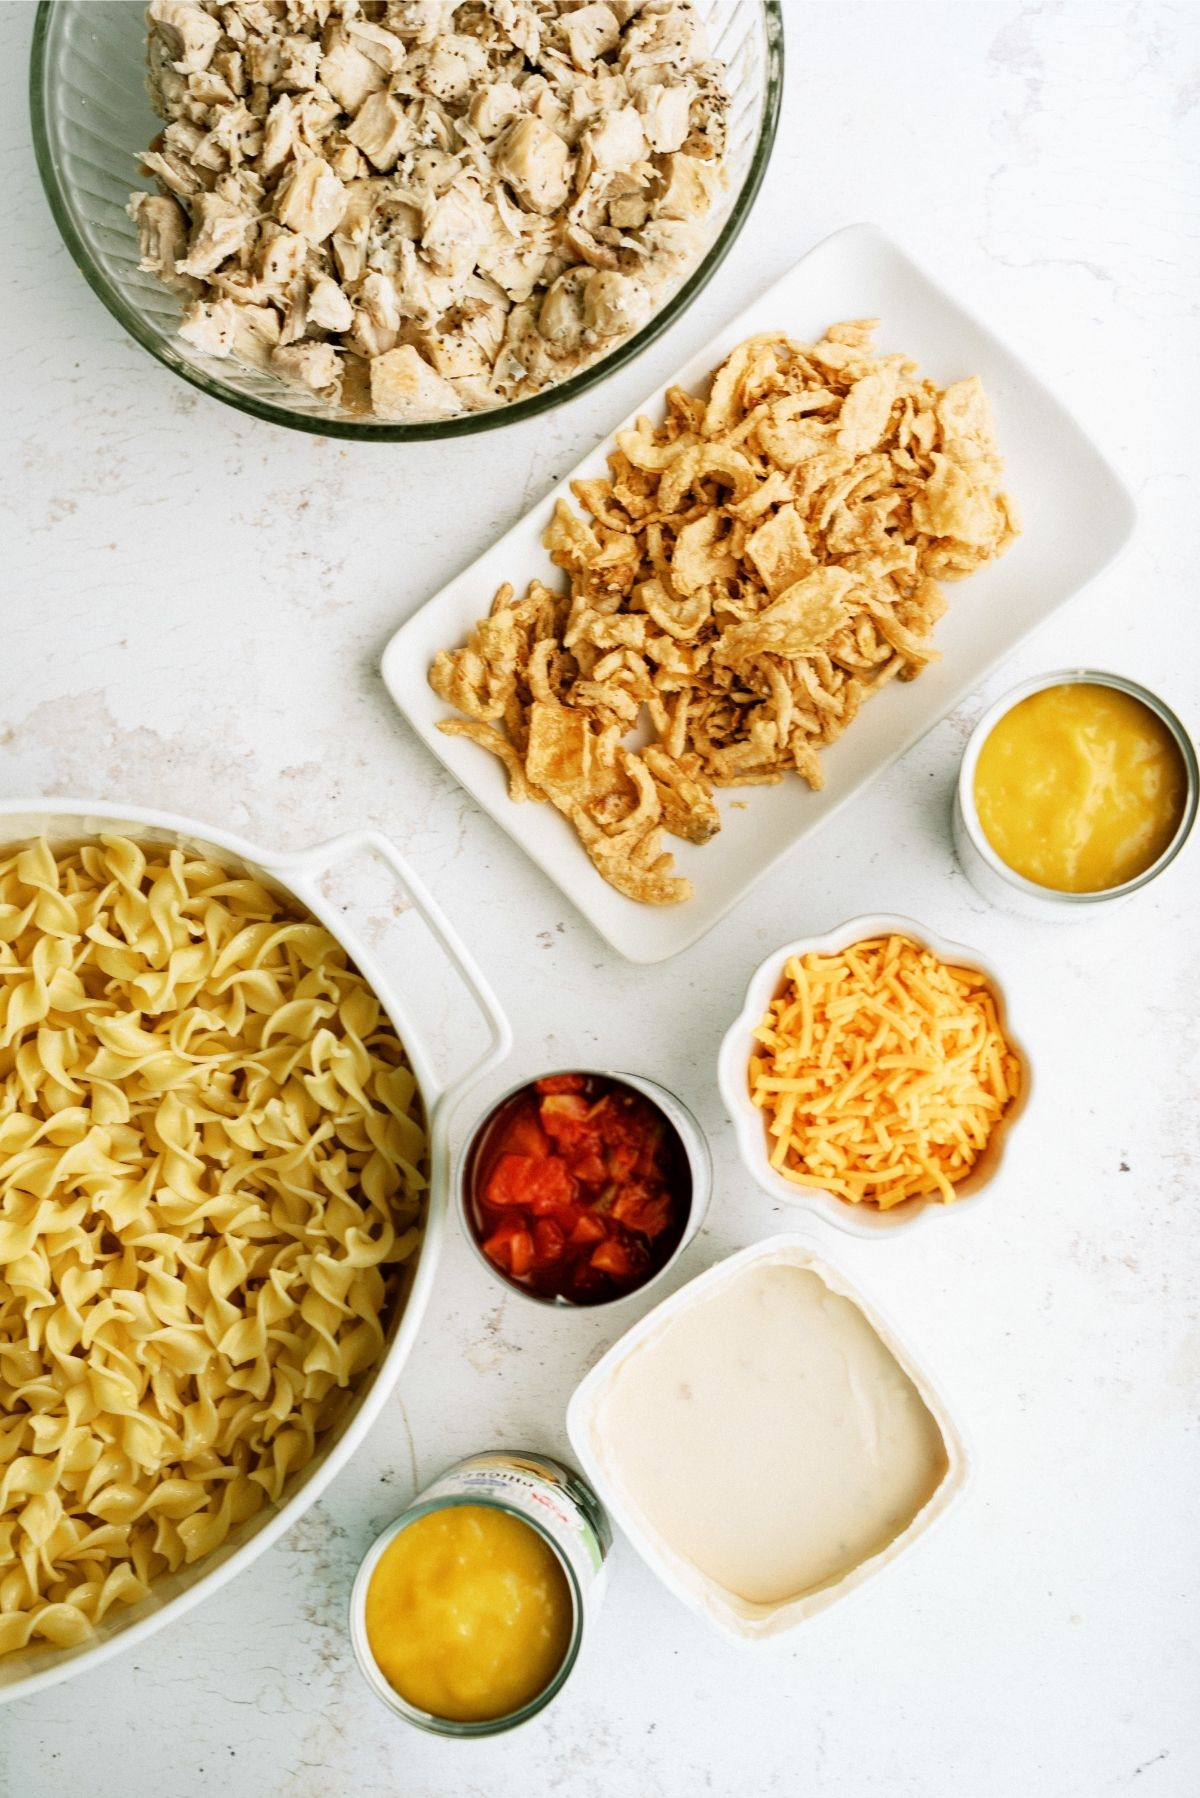 Ingredients for French Onion Chicken Noodle Casserole